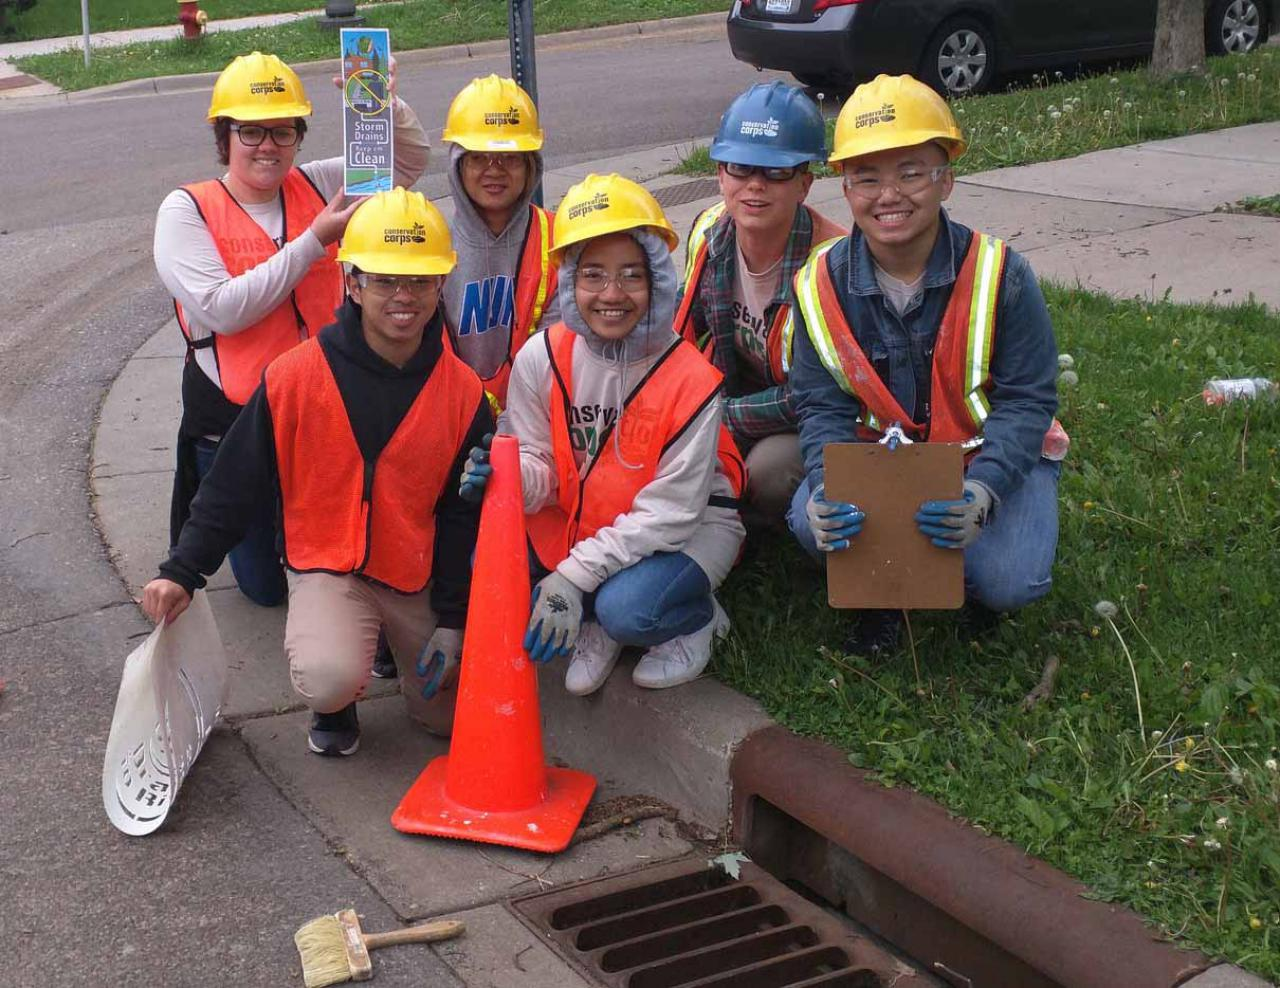 Stenciling drains for the Mississippi River!